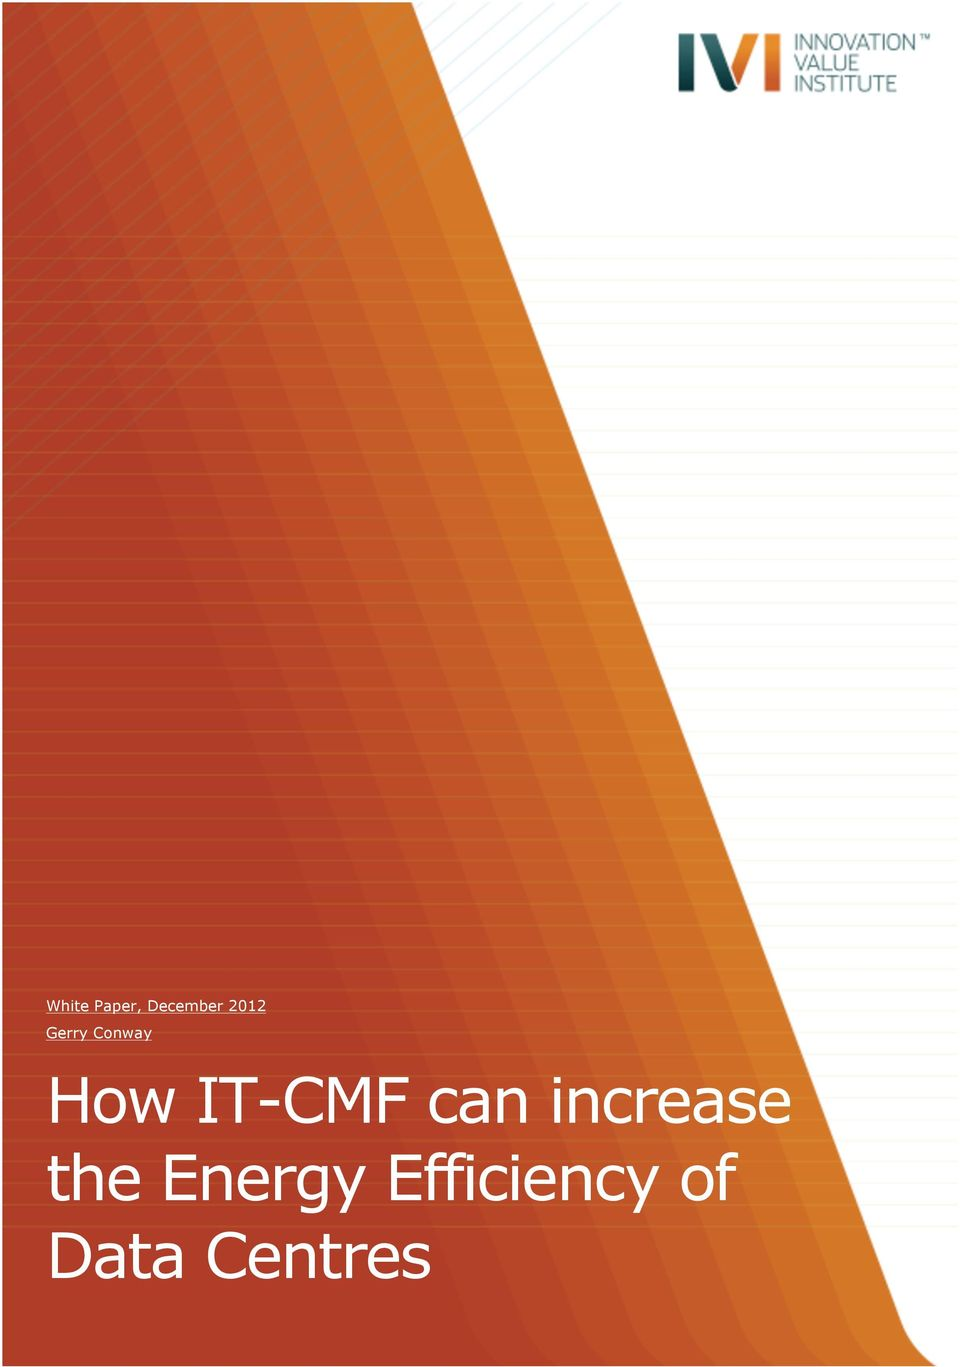 How IT-CMF can increase